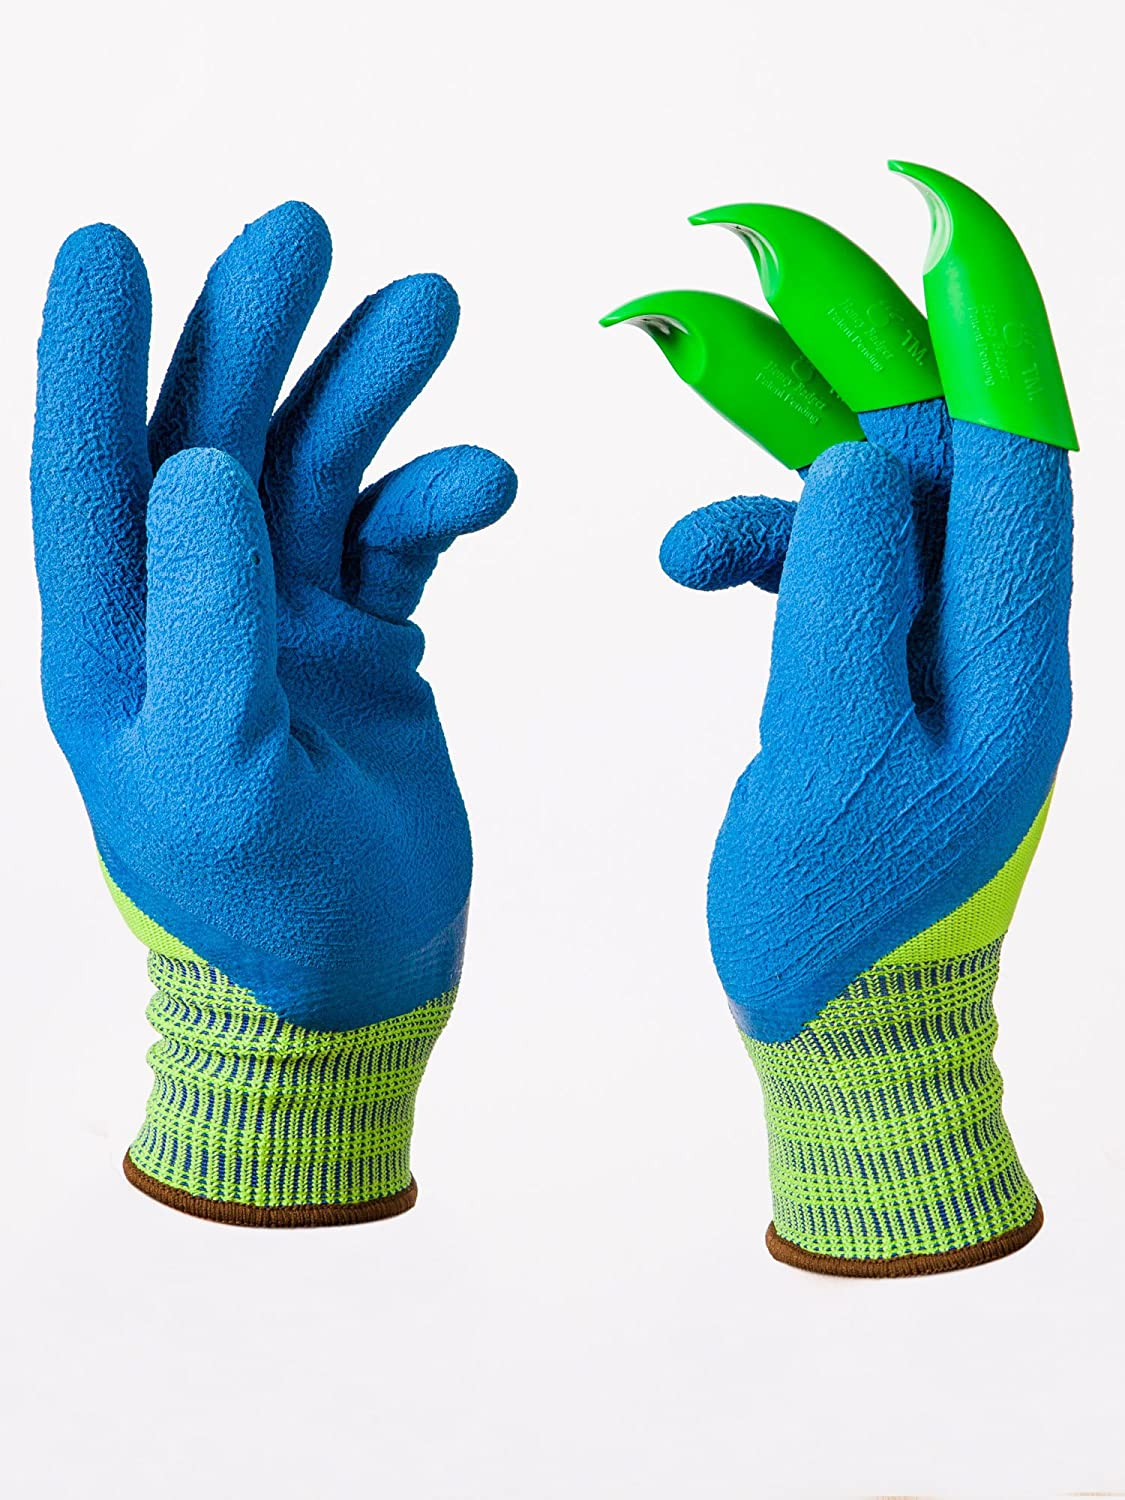 Honey Badger - Garden Gloves – Upgraded Premium Womens Gloves - All in one Tool for Light Gardening tasks - Green Claws on Right Hand - The ORIGINAL Digging Glove(TM.)